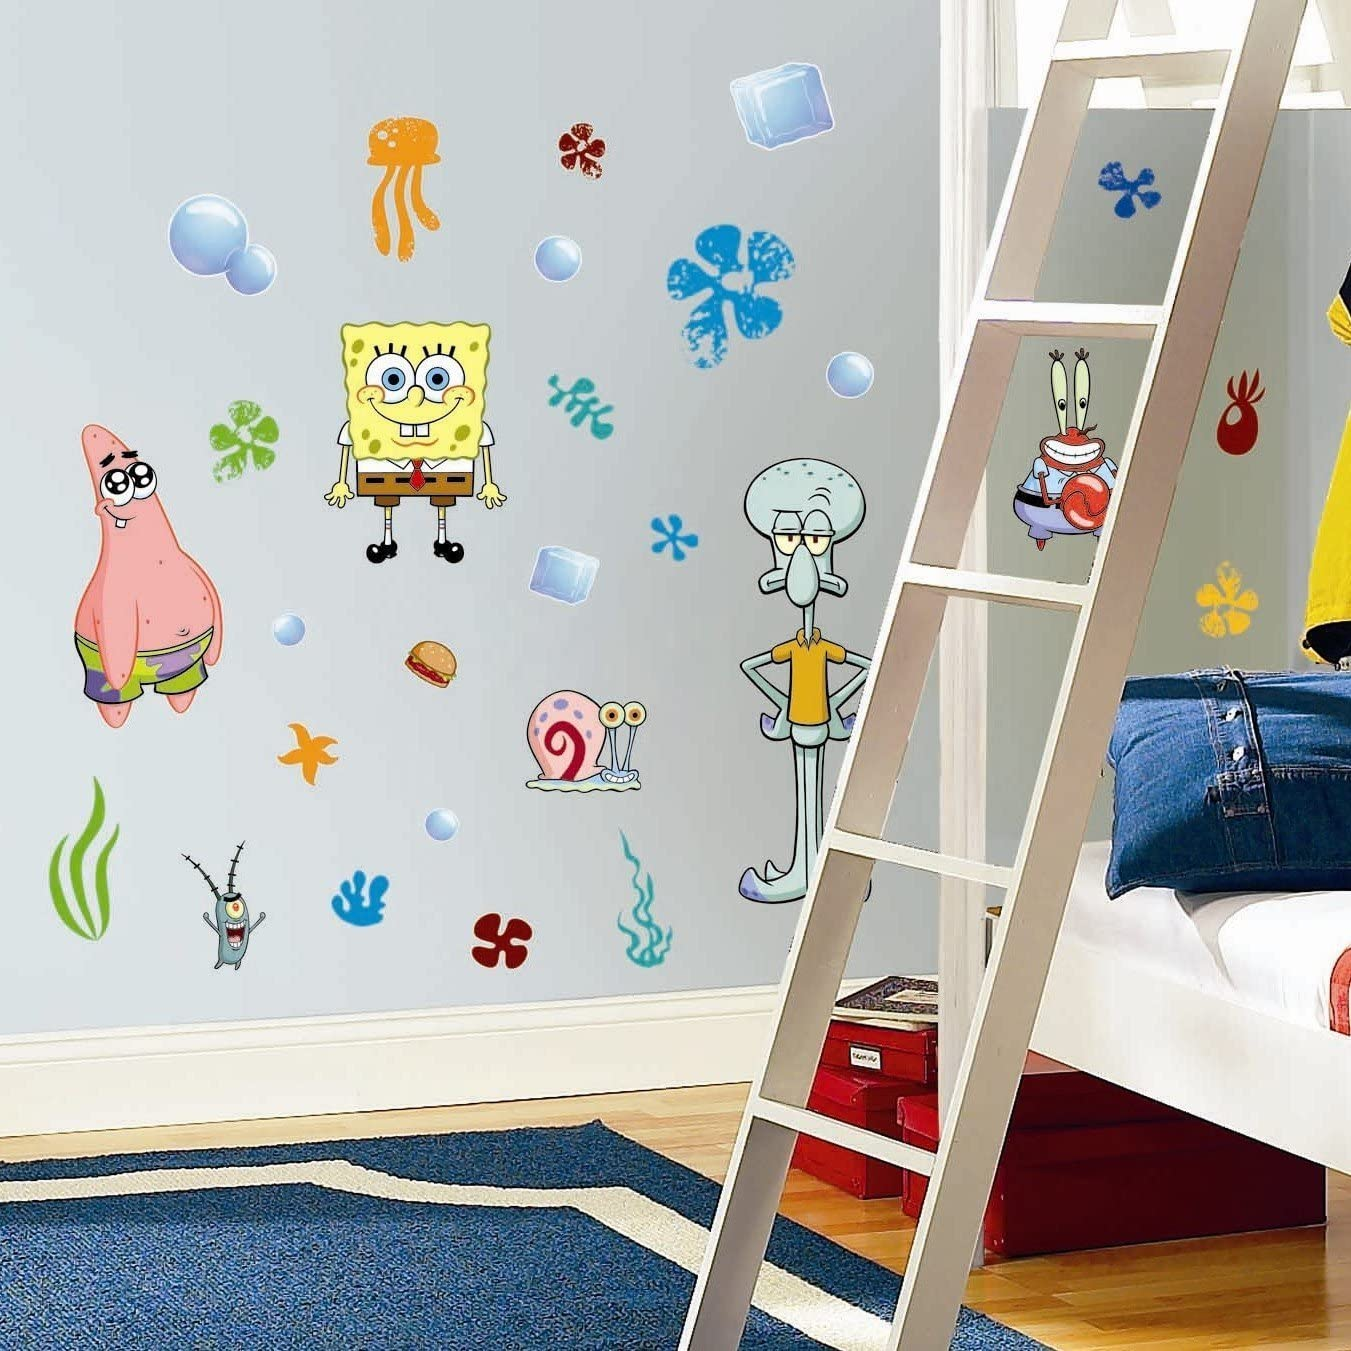 SET OF STICKERS SPONGEBOB SQUAREPANTS WALL STICKERS BOYS ROOM DECAL